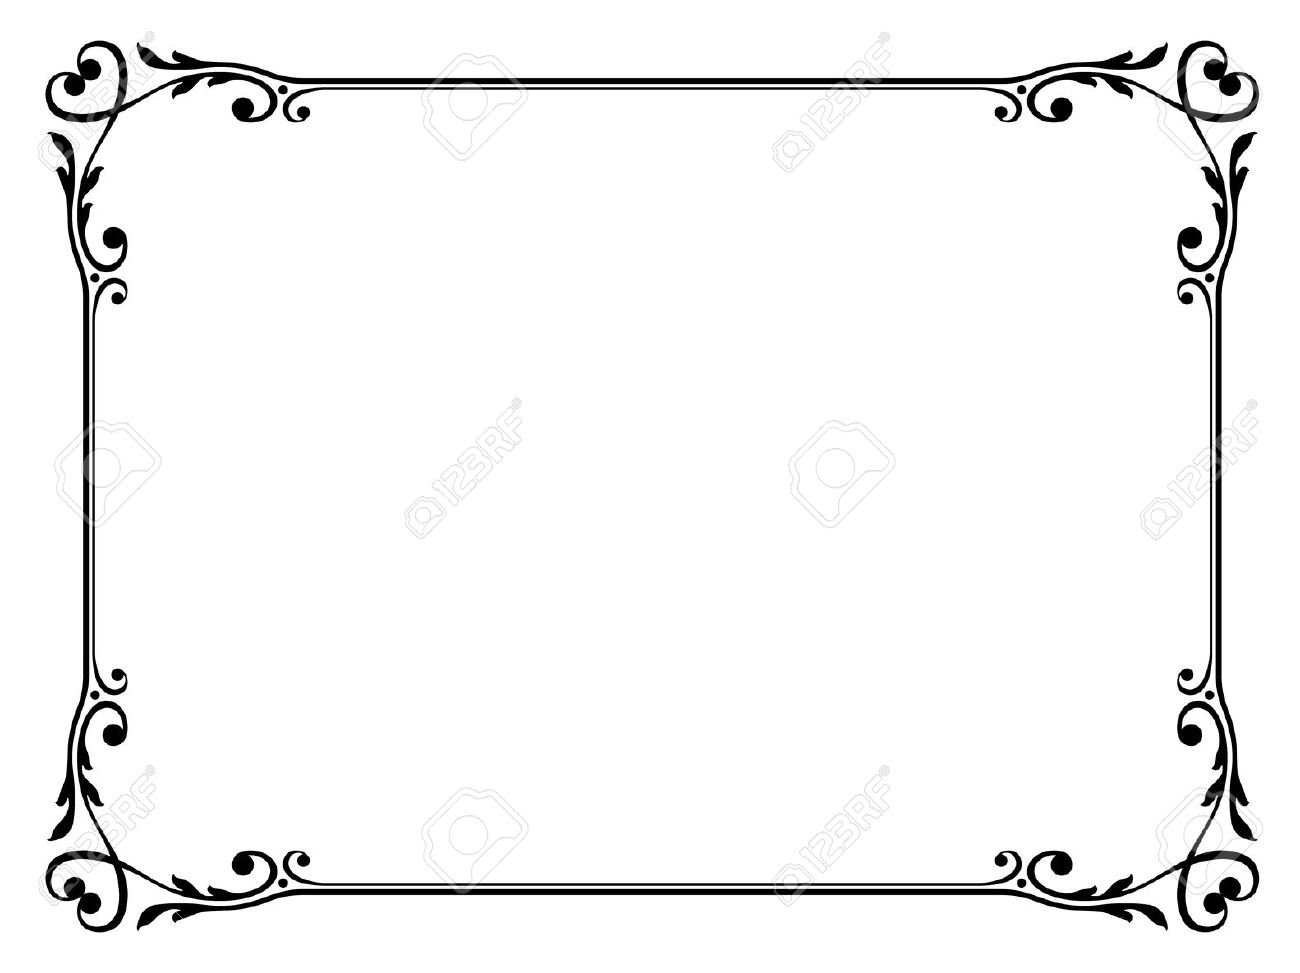 1300x973 Border Clipart, Suggestions For Border Clipart, Download Border